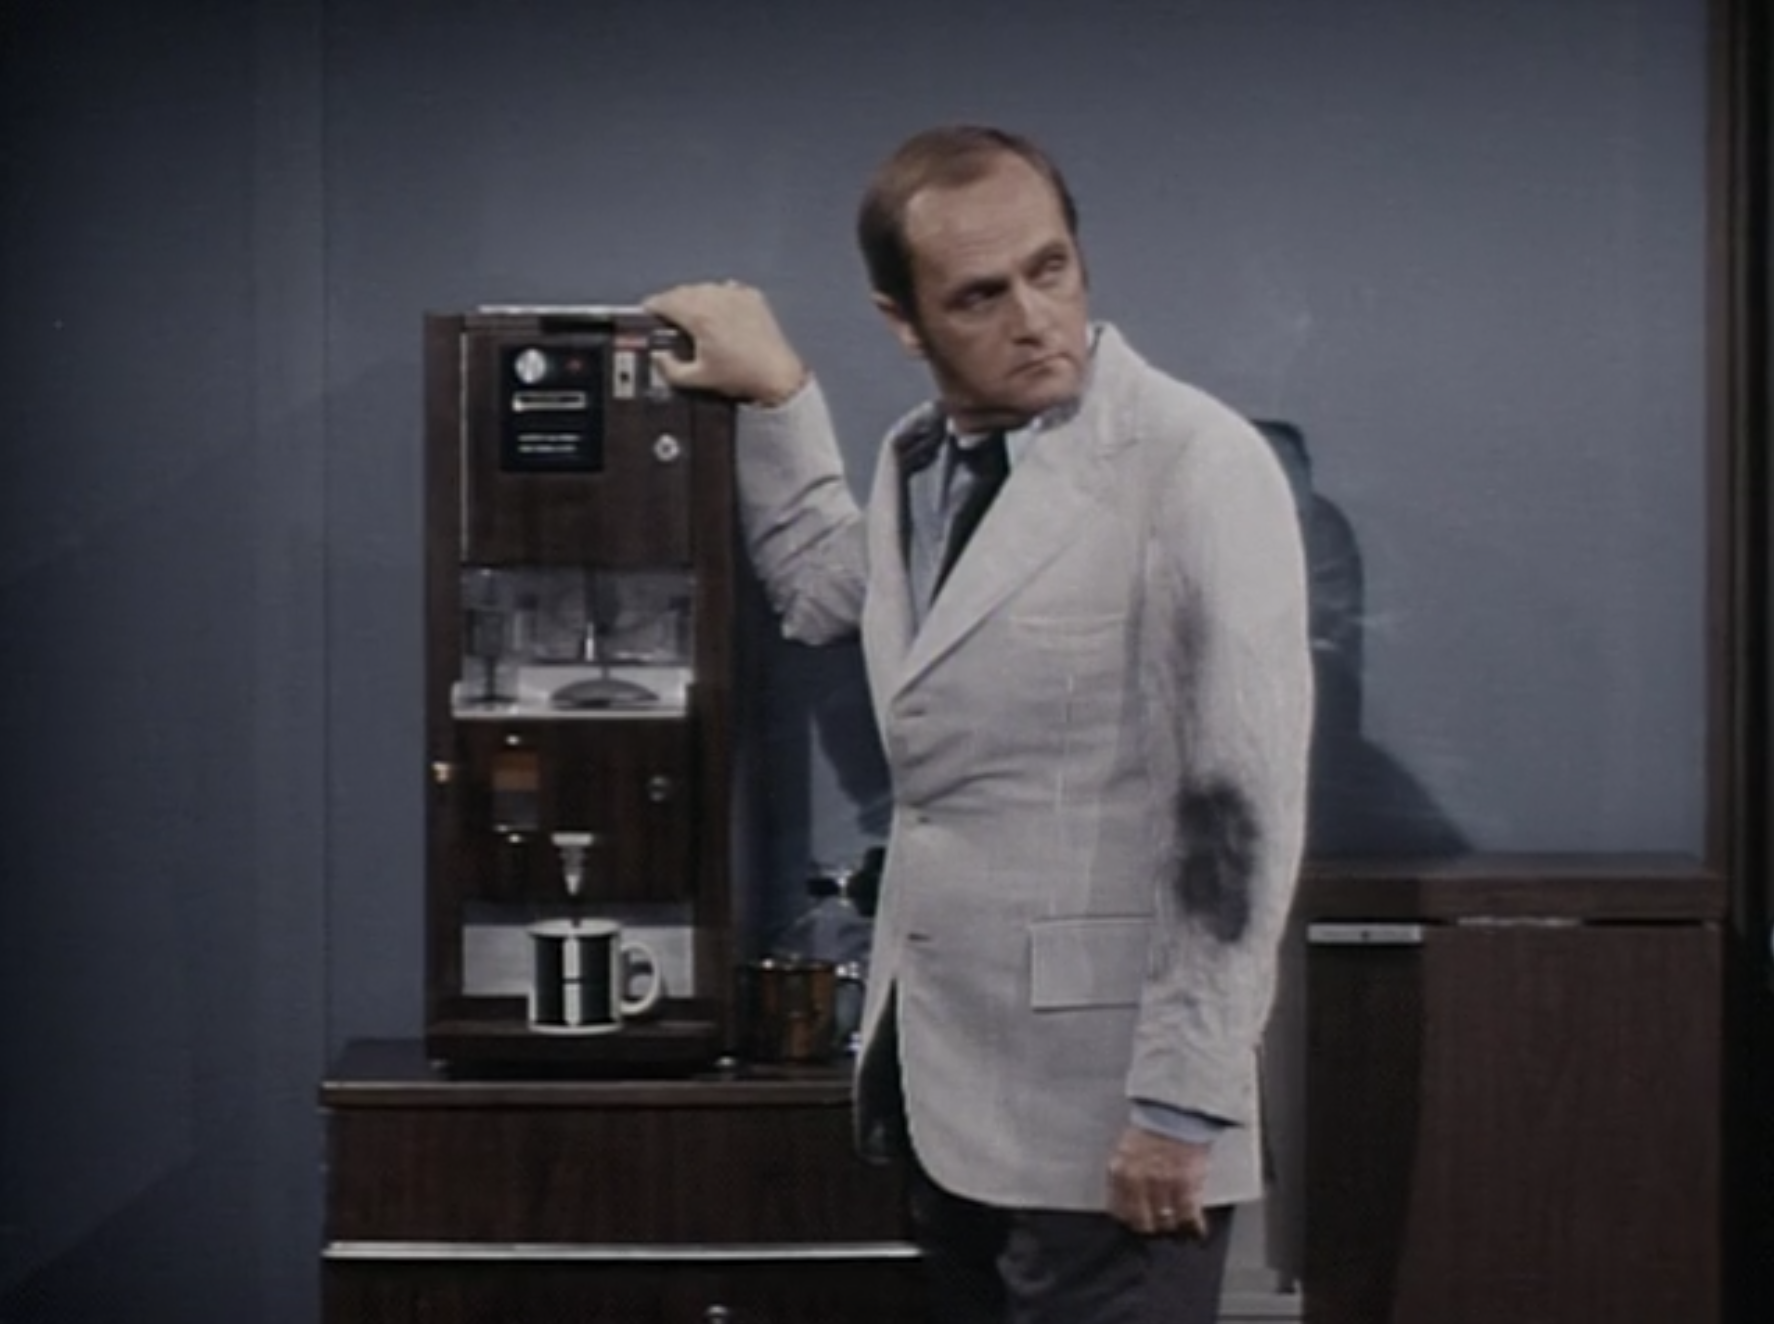 Bob Newhart standing in front of a coffee machine as Dr. Robert Hartley